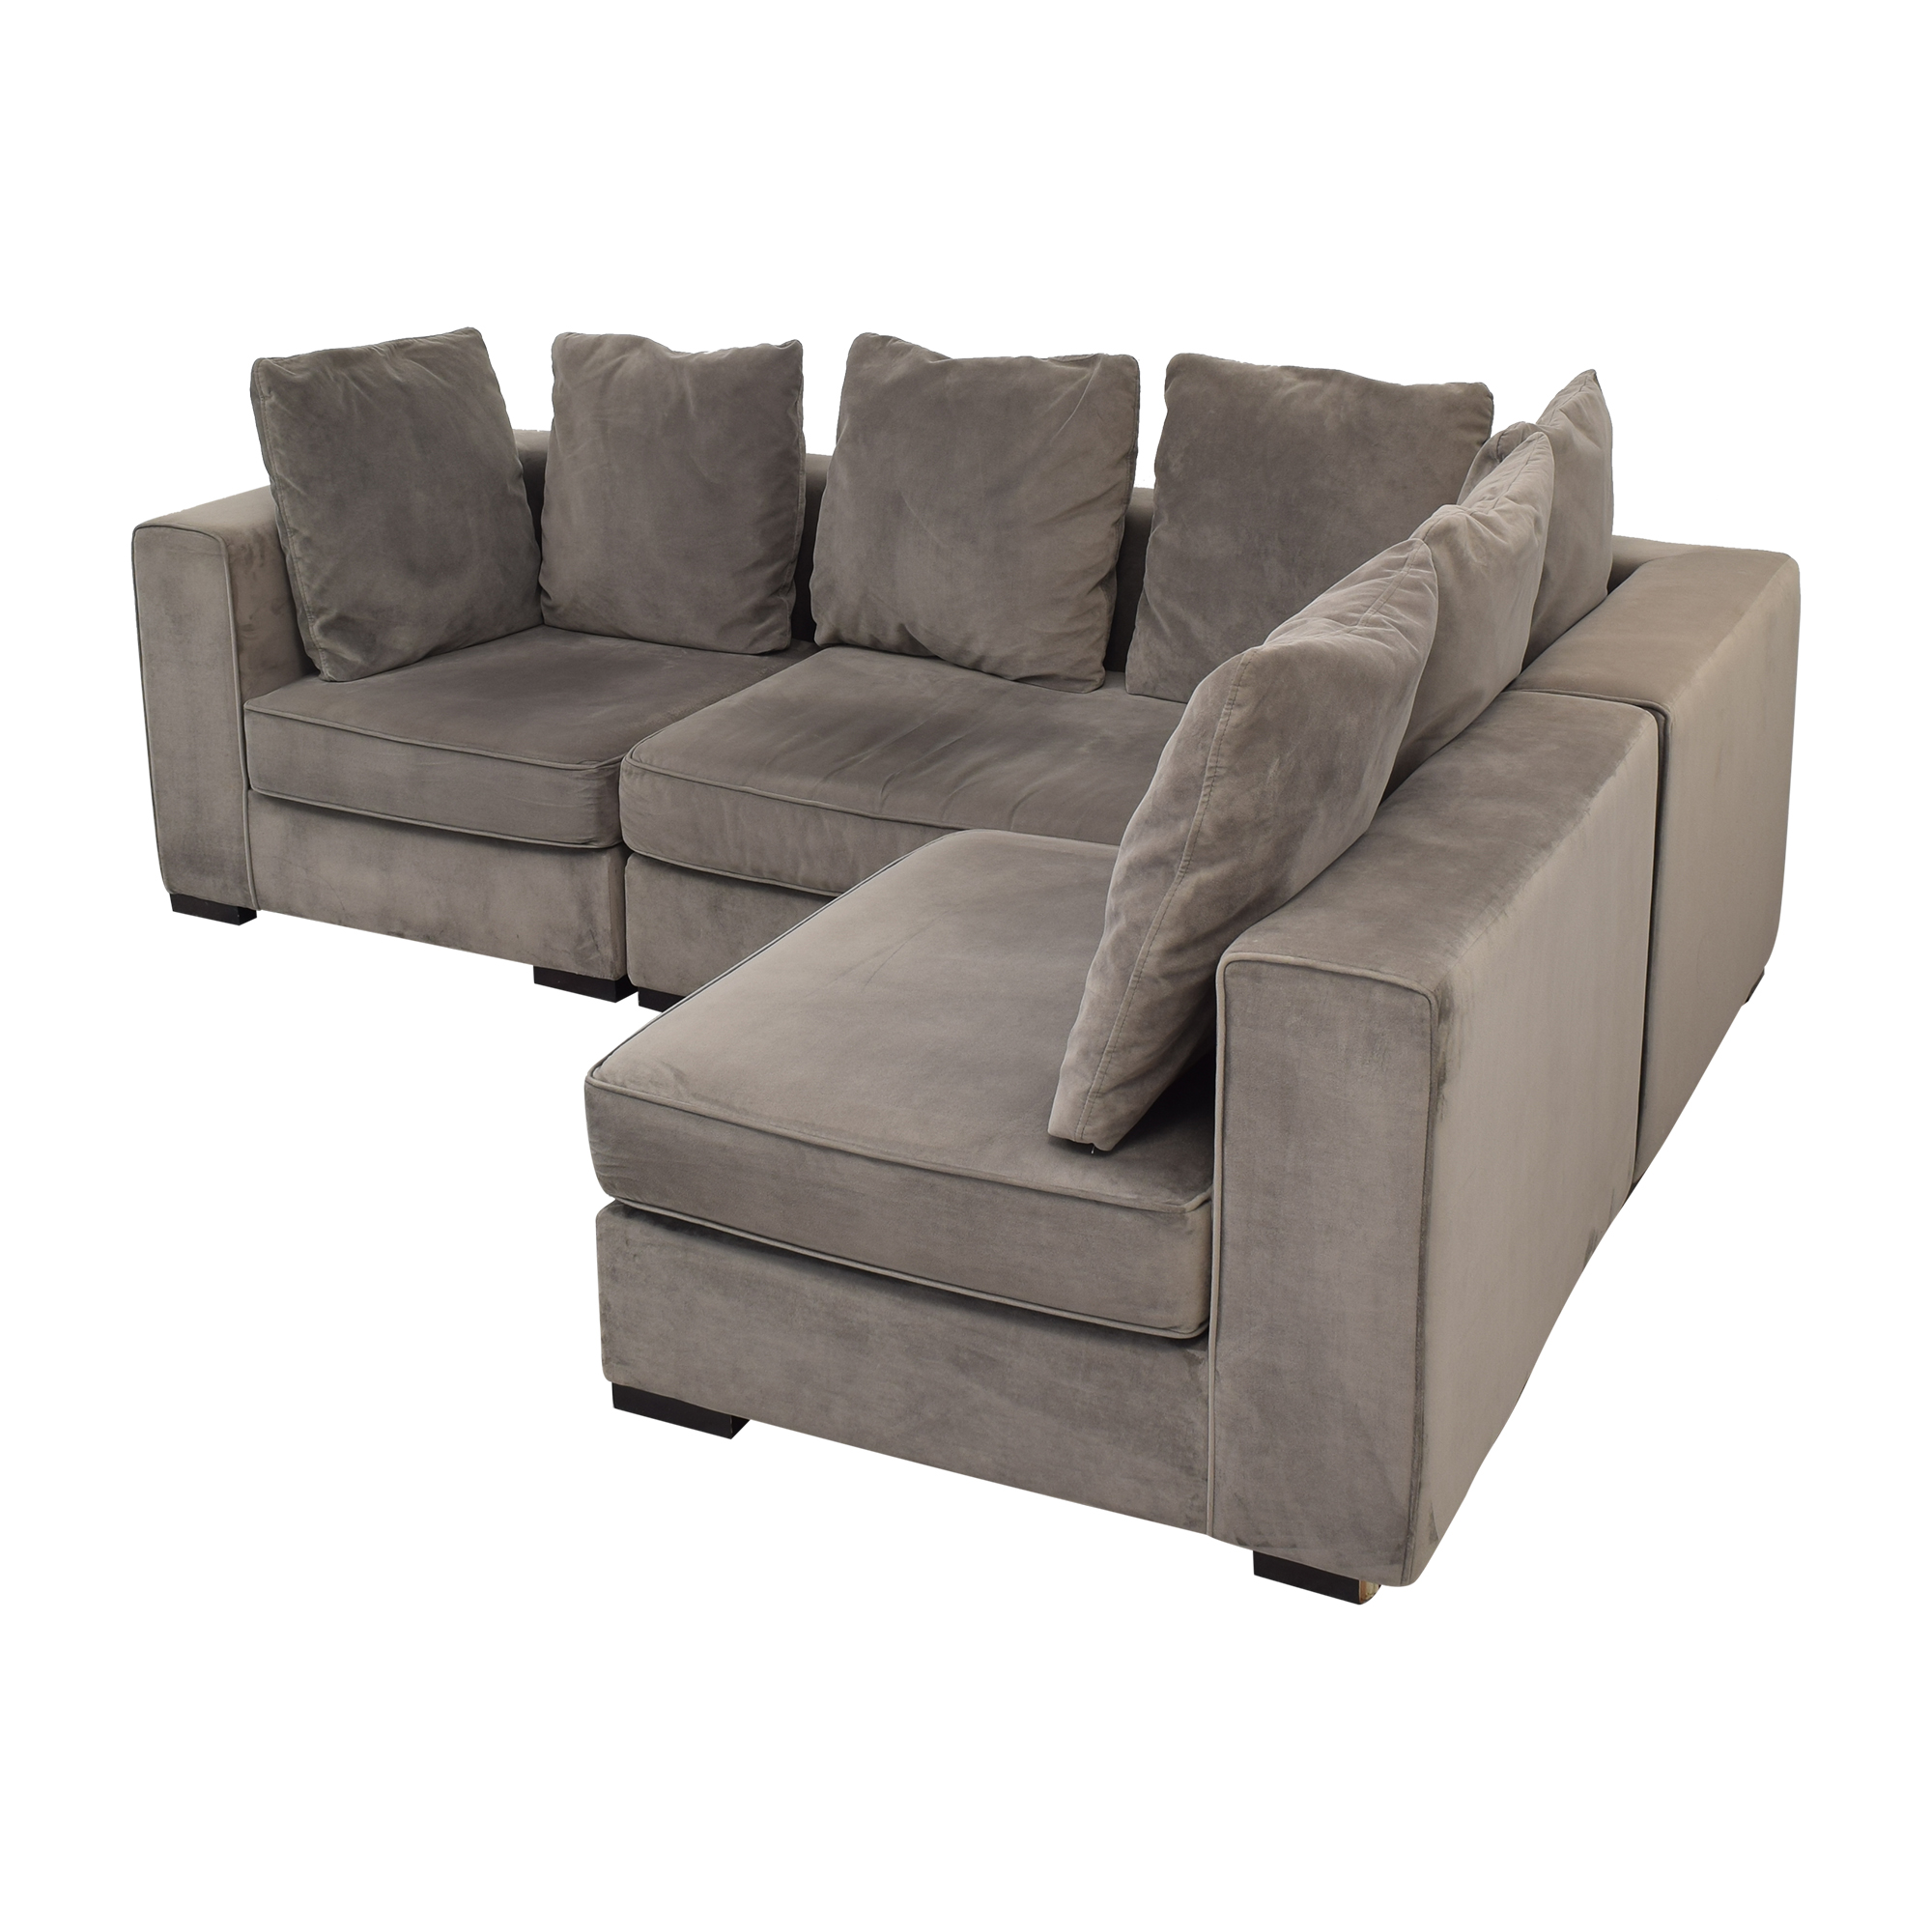 West Elm West Elm 3-Piece Sectional with Ottoman coupon